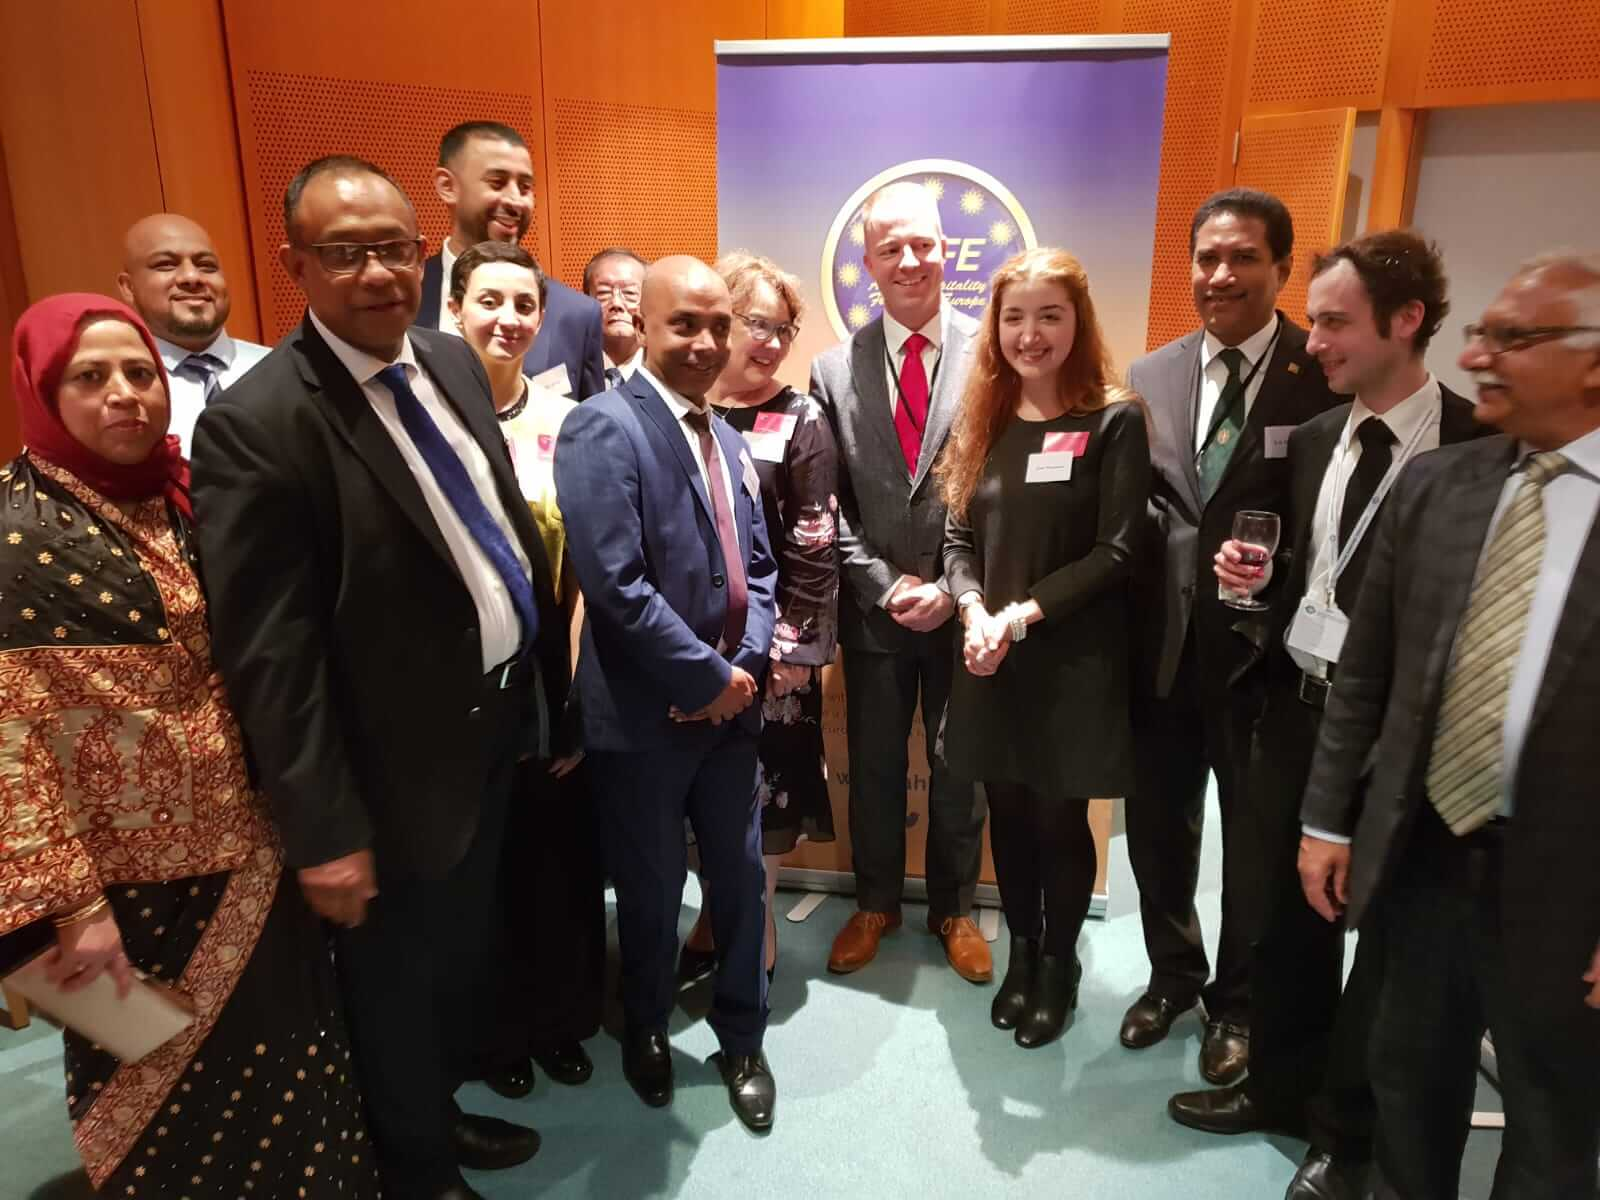 UKCC at the European Parliament, Brussels